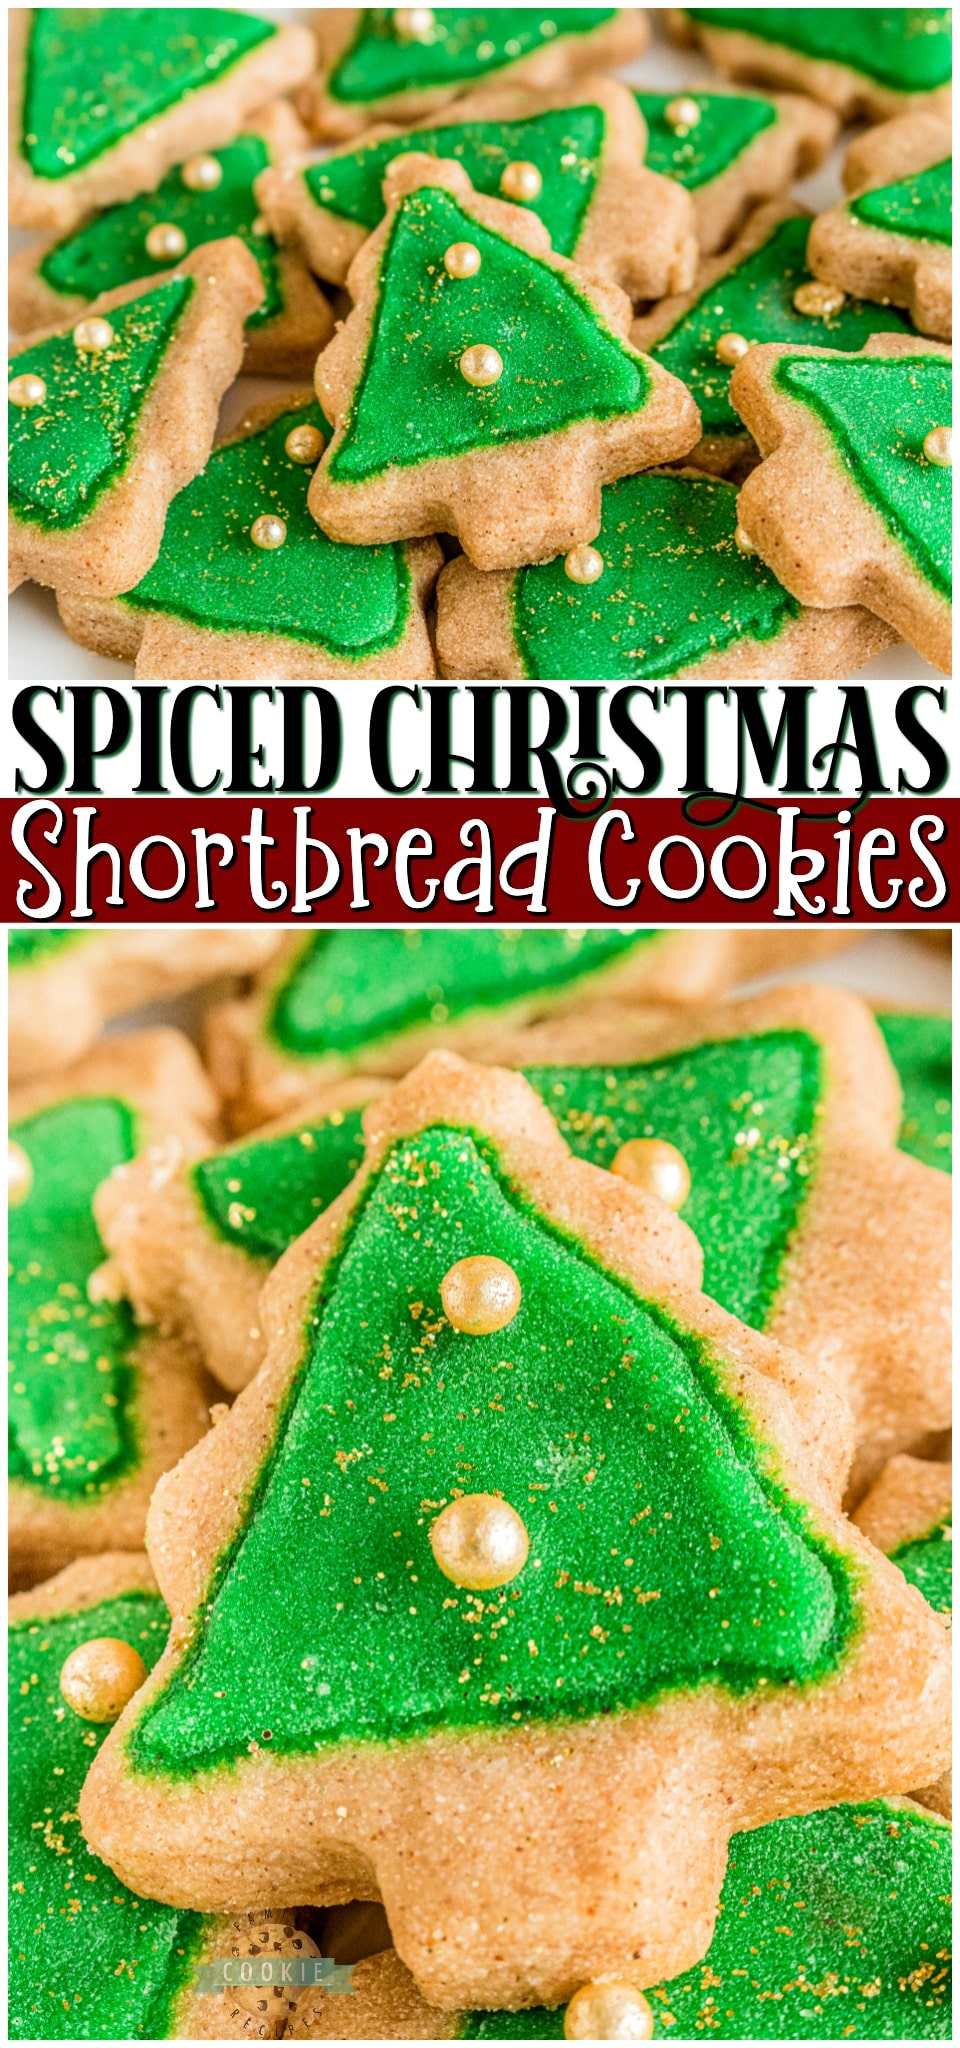 Spiced Christmas Shortbread Cookies made with cinnamon & allspice in the dough and topped with a simple icing recipe for perfect Christmas cookies! Buttery shortbread cookies with great flavor & texture for holiday baking. #Christmas #shortbread #cookies #baking #cinnamon #cookierecipe #holidaybaking from FAMILY COOKIE RECIPES via @buttergirls